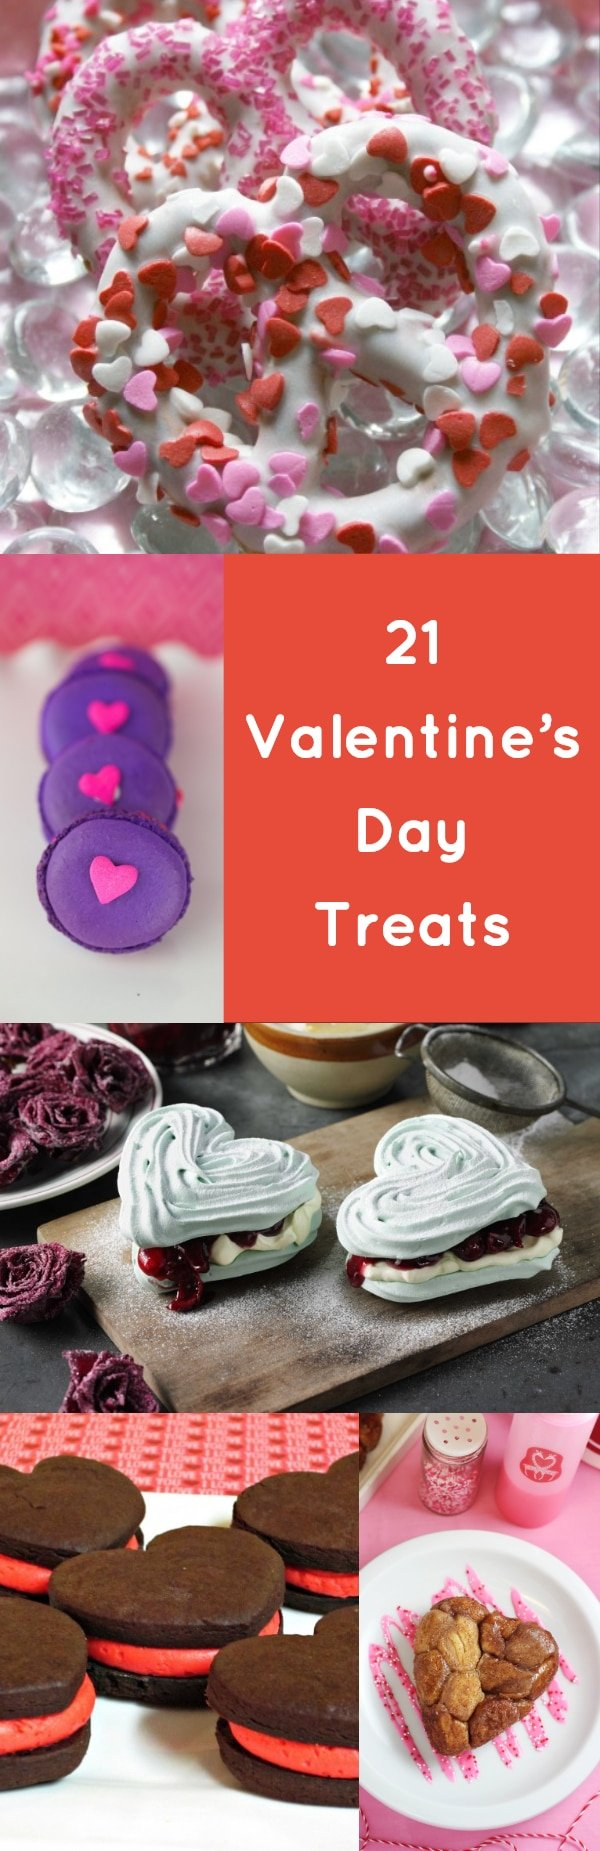 Valentine's Day Treats are the perfect excuse to break out everything red and pink, to decorate with hearts, and just revel in the feeling of being loved and showing others how much you love them. #easy #desserts #party #cute